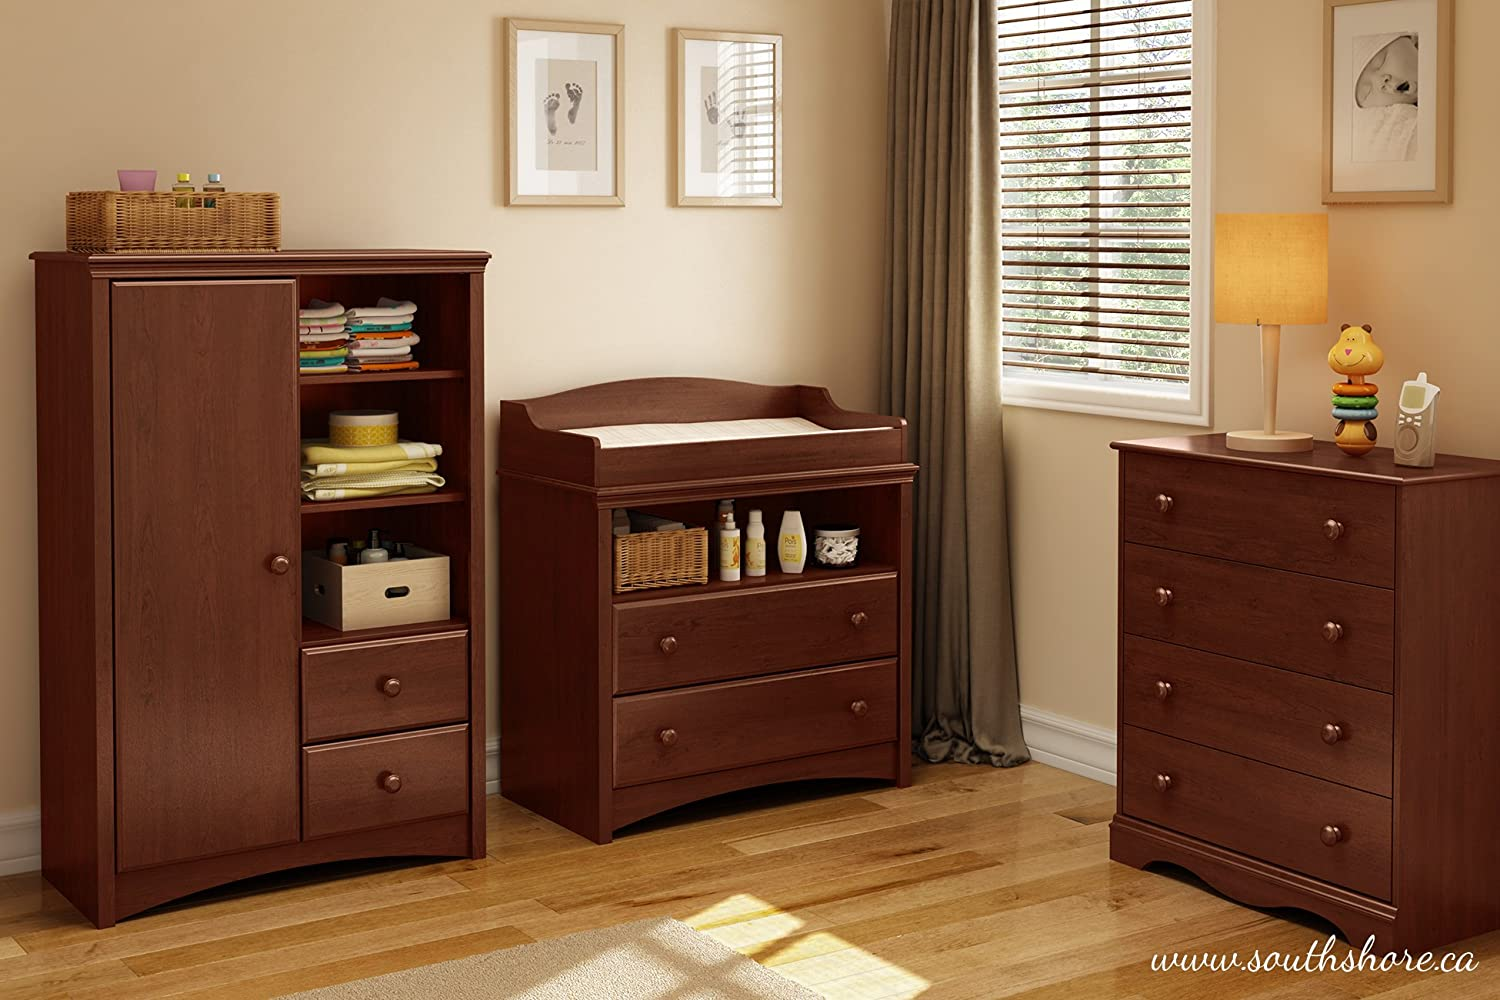 Amazon.com : South Shore Furniture, Sweet Morning Collection, Changing Table,  Royal Cherry : Baby Changing Table : Baby